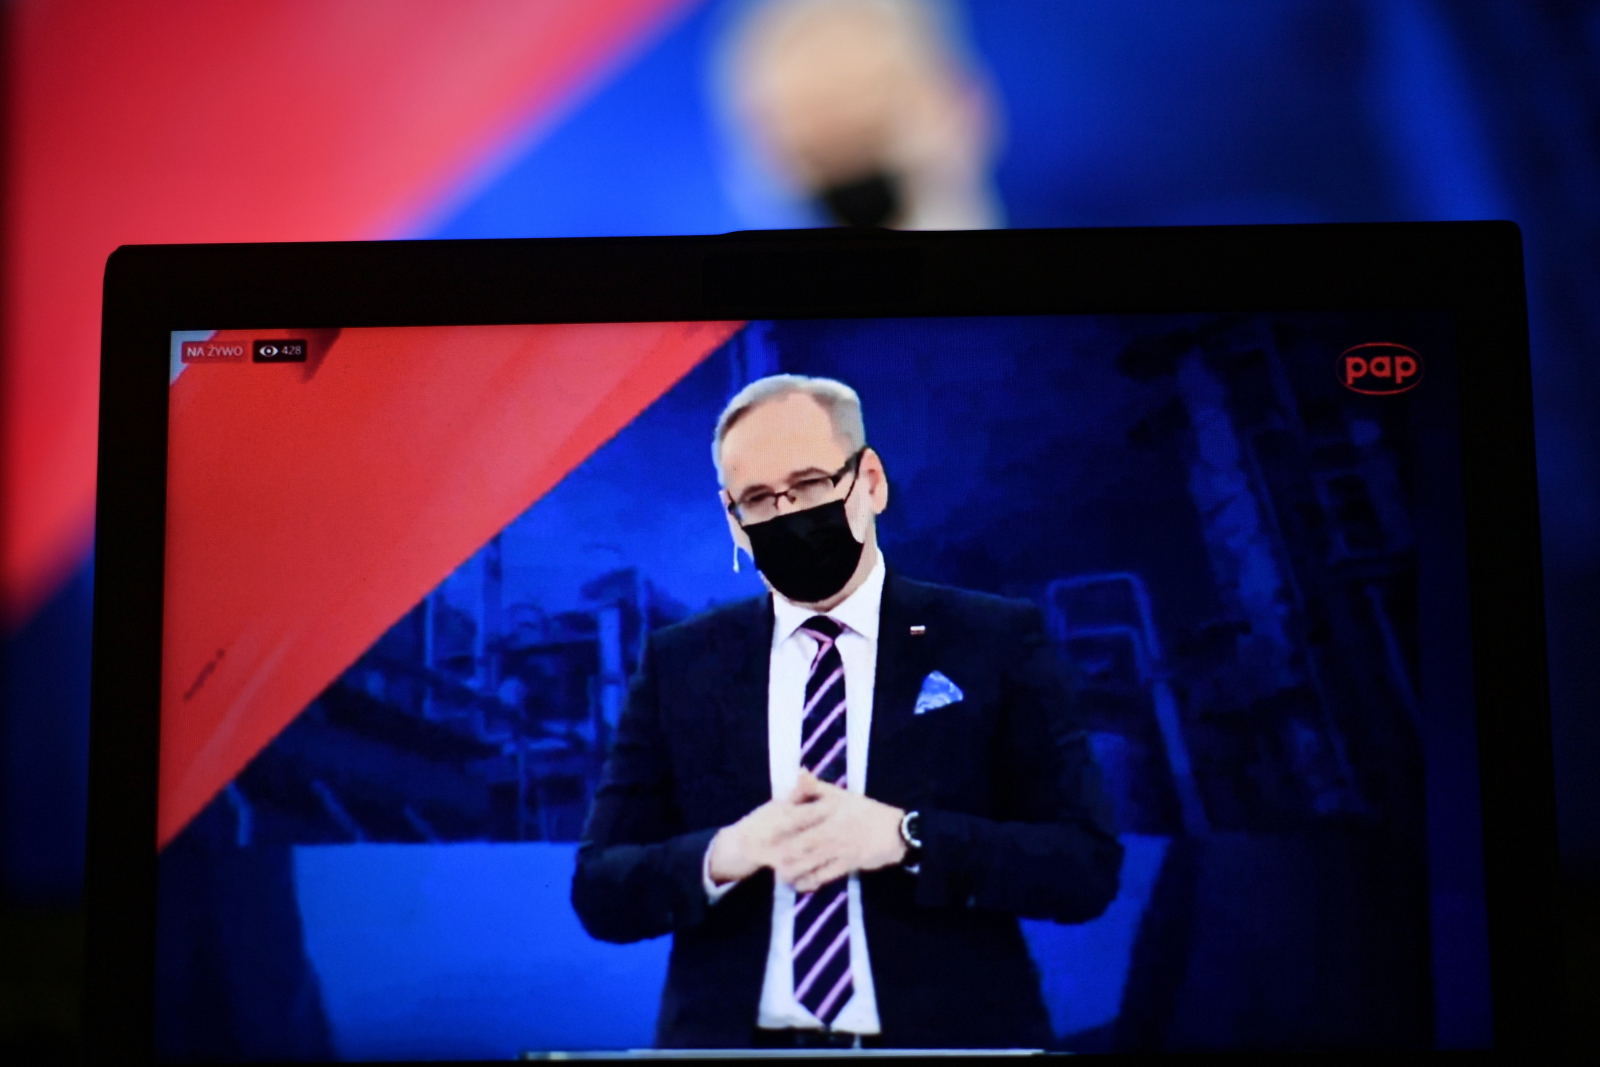 Polish health minister Adam Niedzielski during a debate on the New Deal, a set of post-pandemic measures announced by the governing Law and Justice party, held in the southeastern city of Chełm, May 21, 2021.